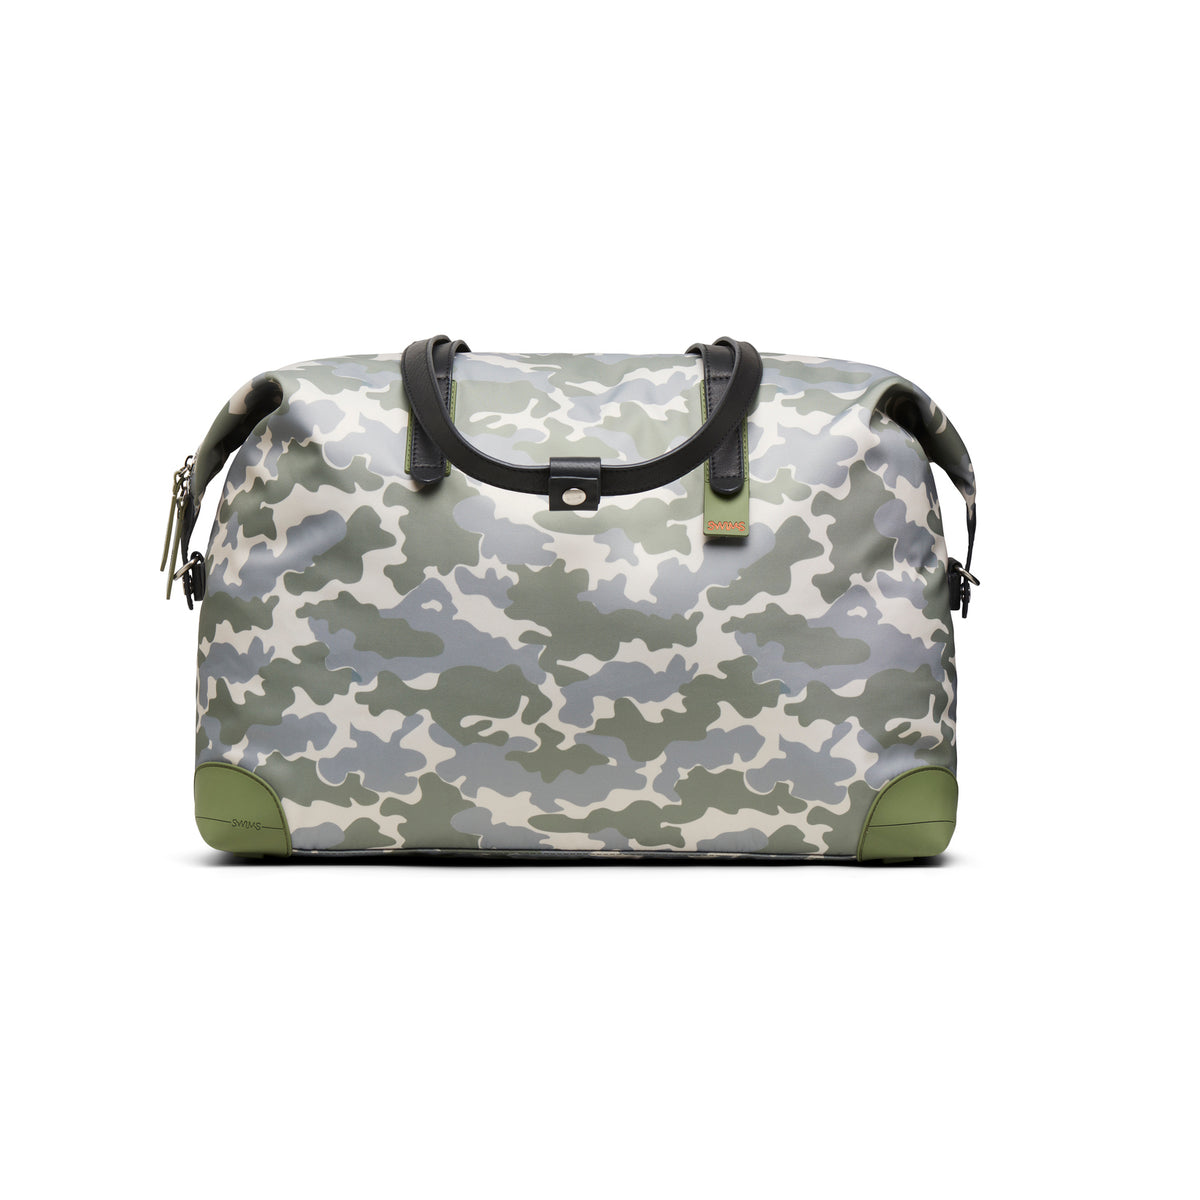 48 Hour Holdall - background::white,variant::Dessert Camo